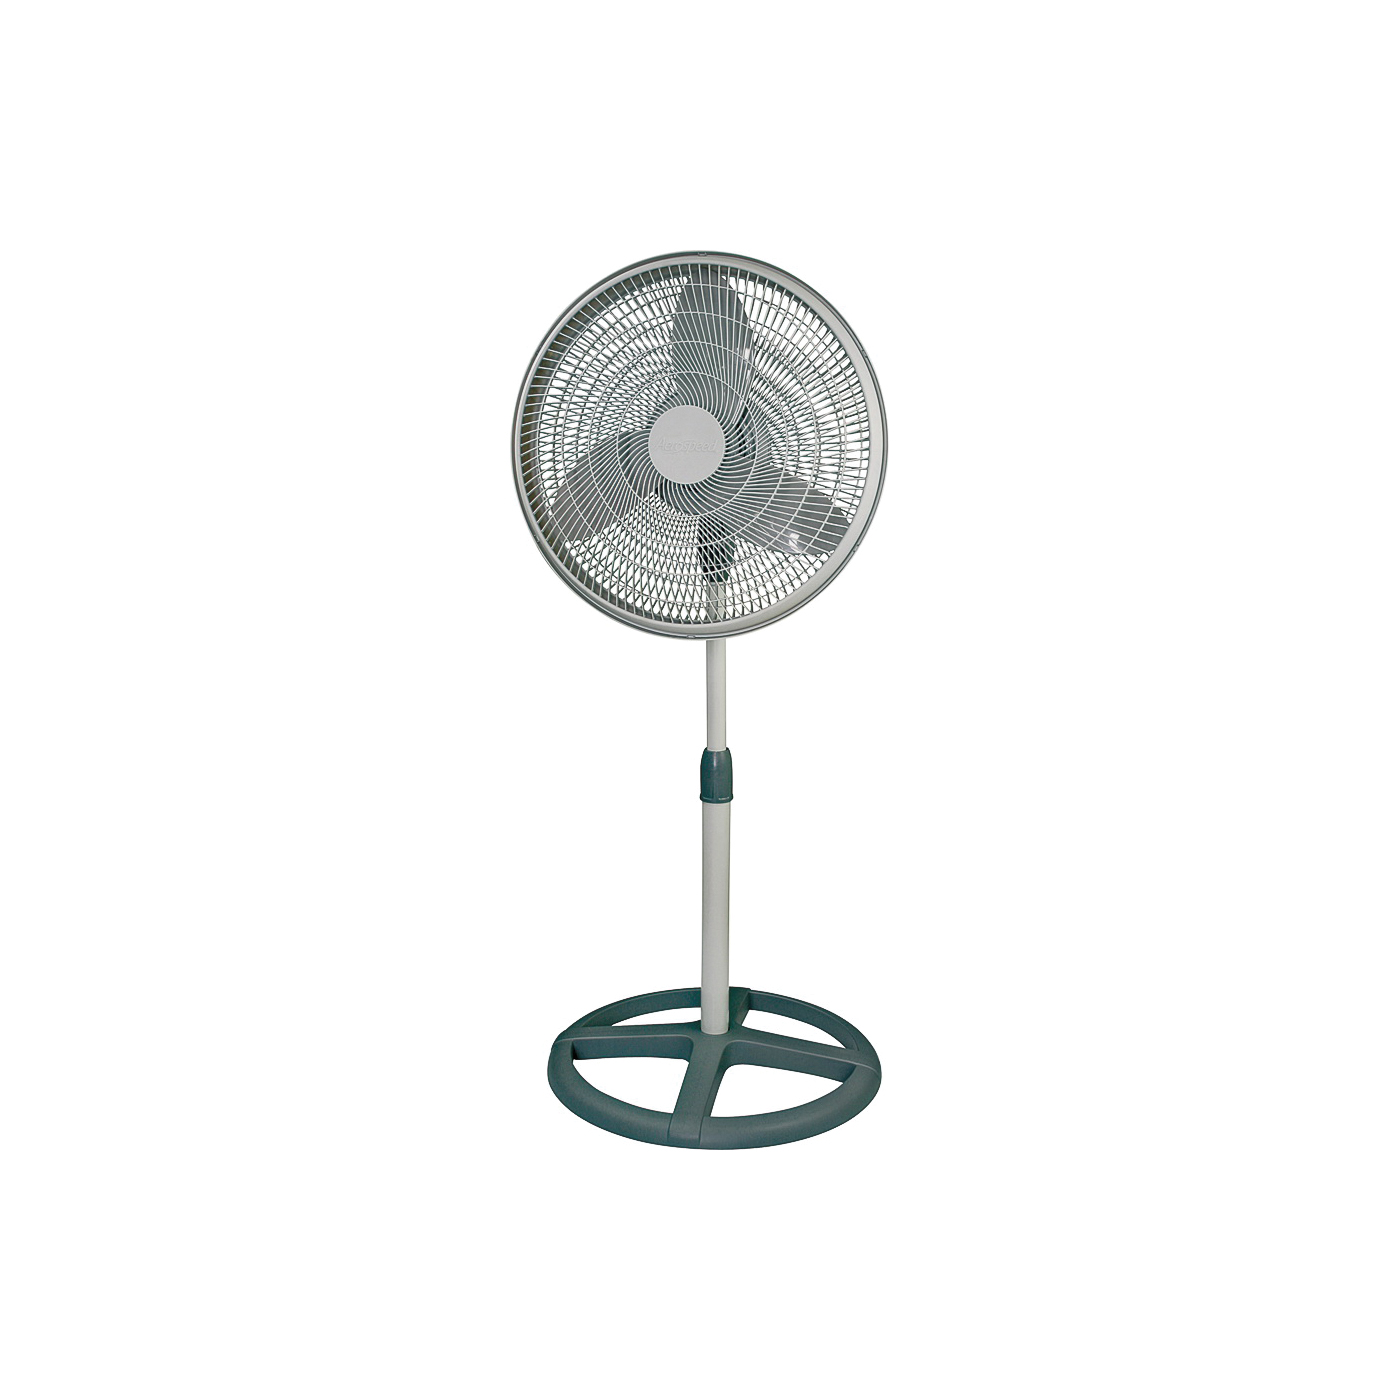 Picture of Camair PF160 Oscillating Pedestal Fan, 120 deg Sweep, 16 in Dia Blade, 5-Blade, Black